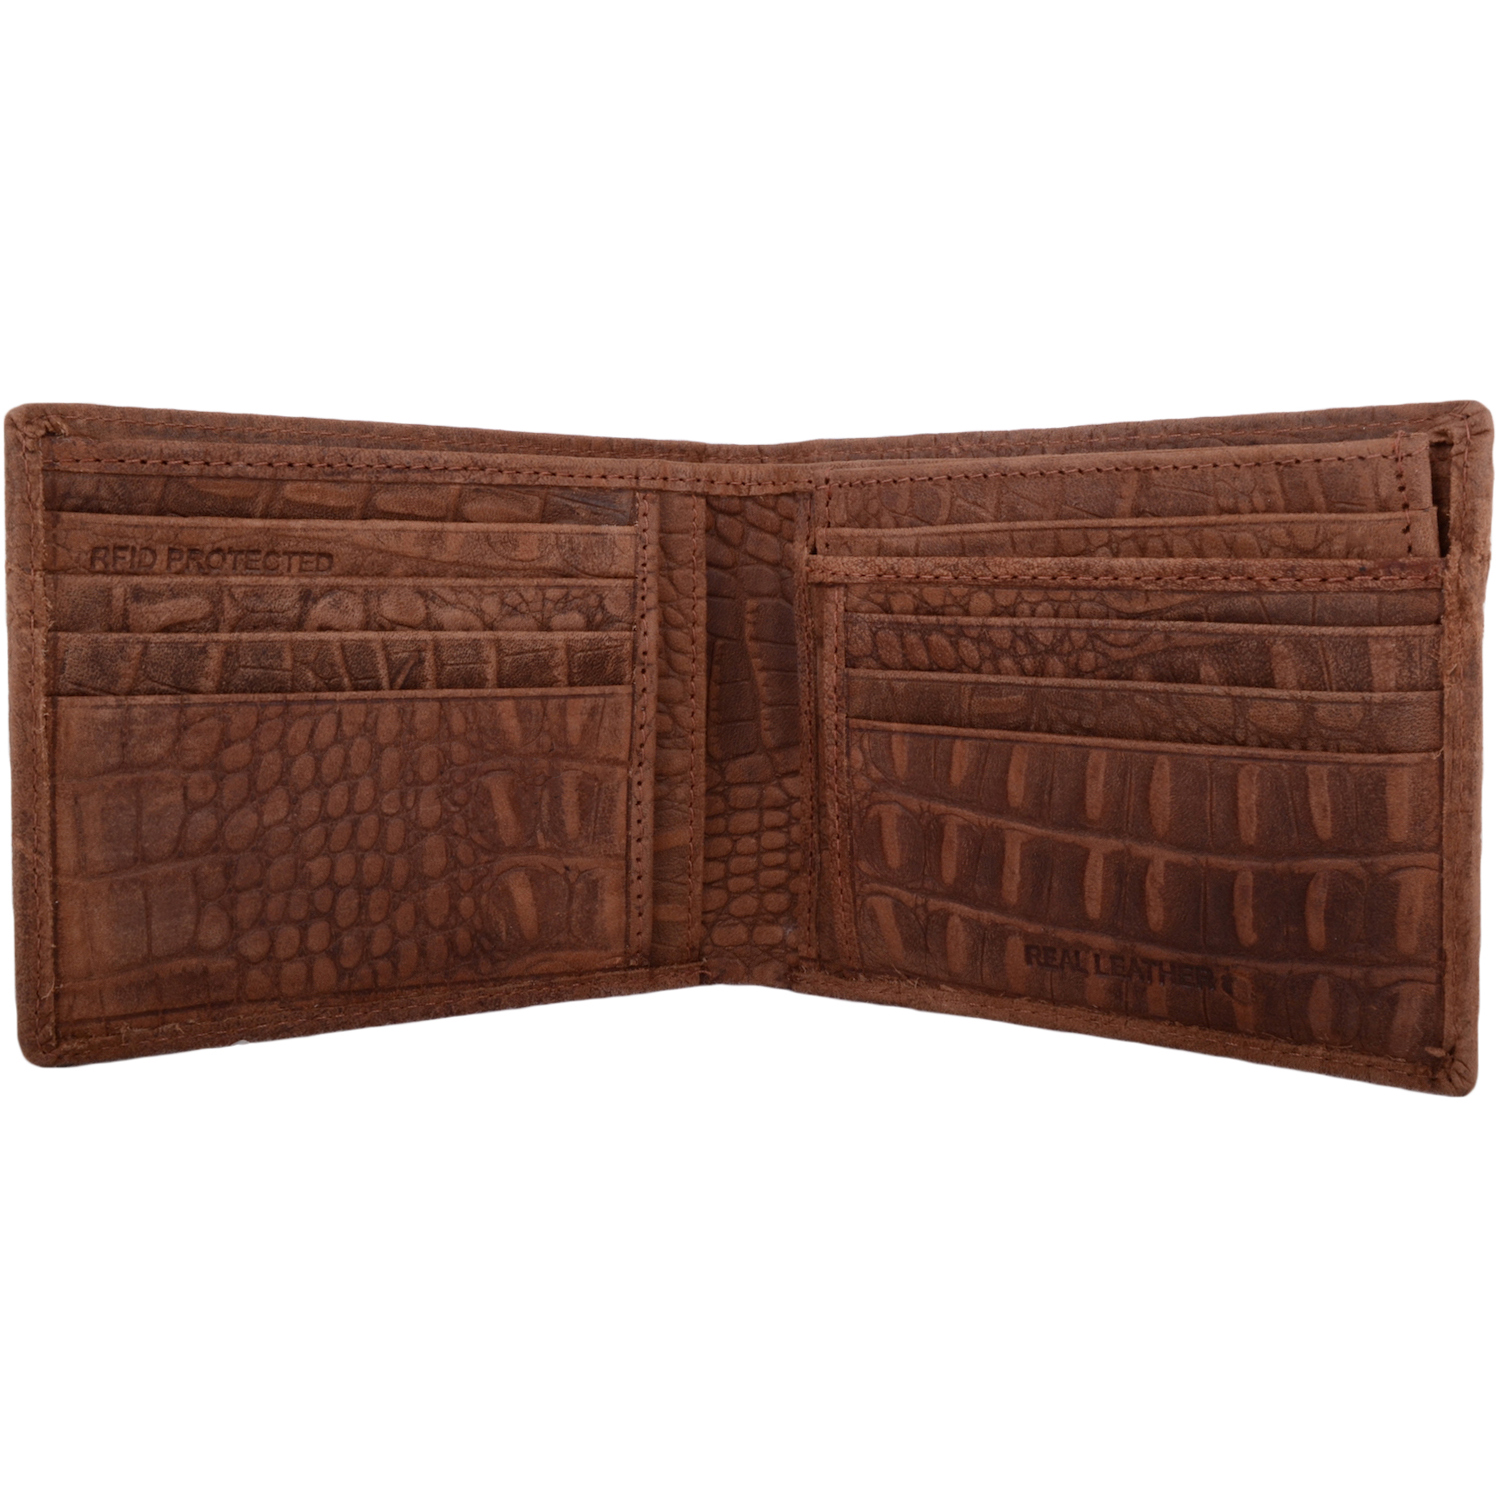 Leather Bi-Fold RFID Protected Money / Coin Holder - Mid Brown